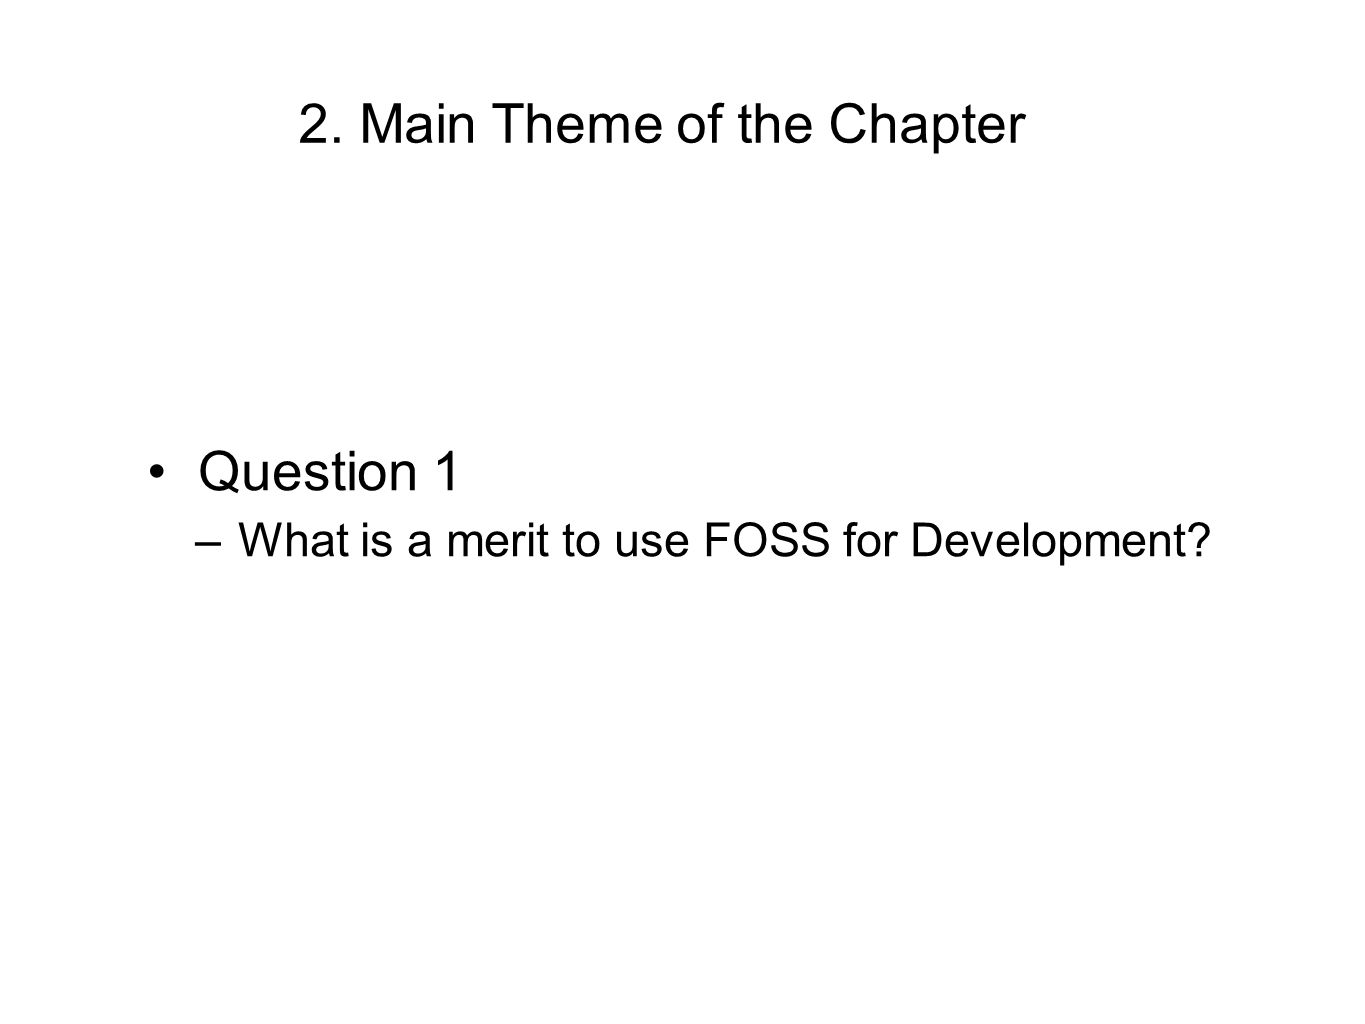 Question 1 –What is a merit to use FOSS for Development 2. Main Theme of the Chapter